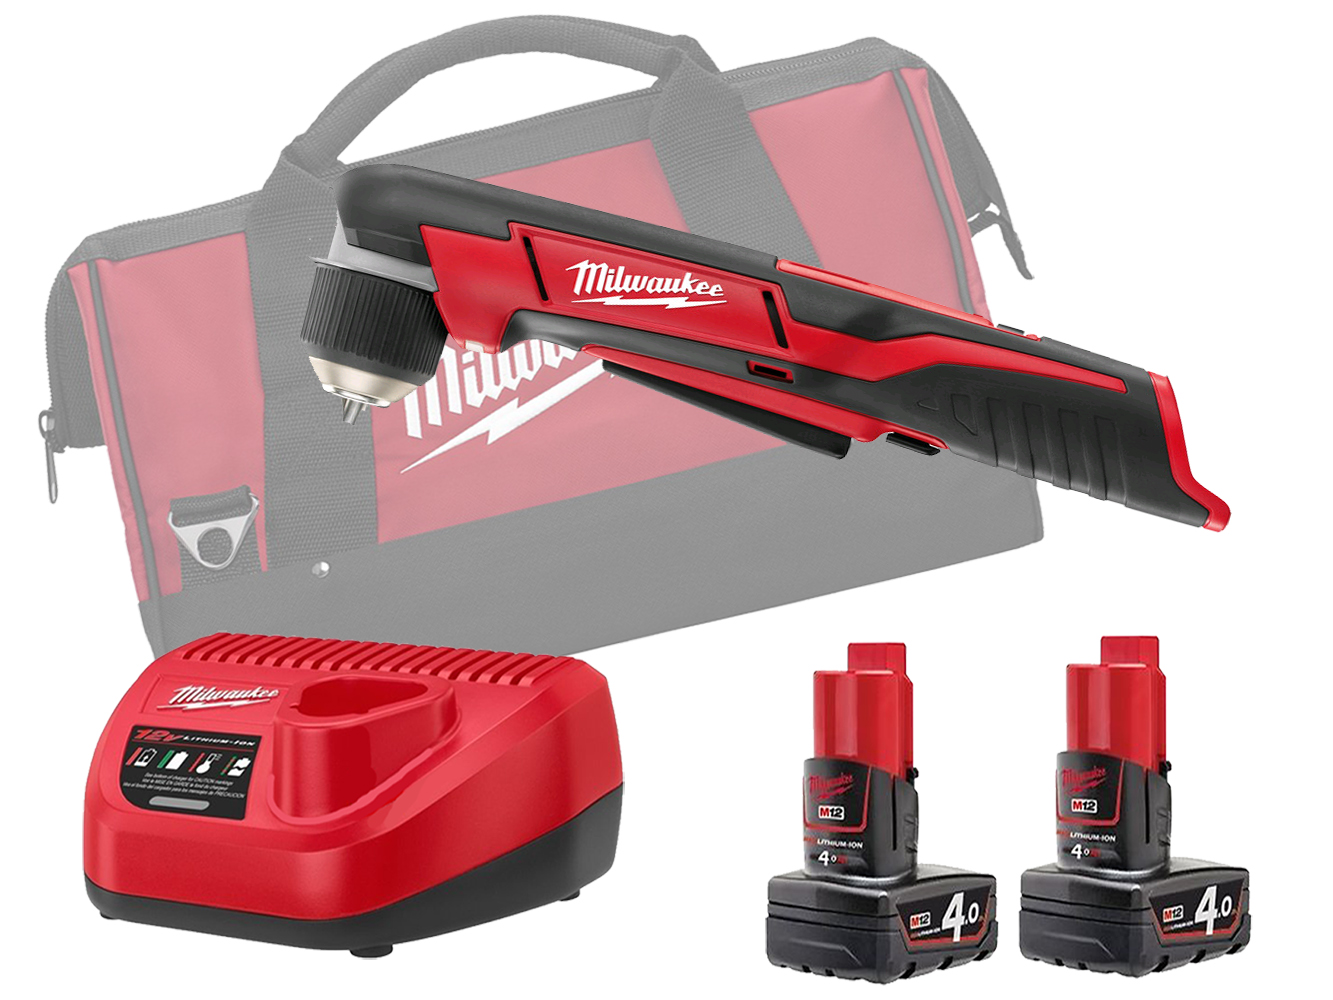 MILWAUKEE 12V COMPACT RIGHT ANGLE DRILL - C12RAD - 4.0AH PACK